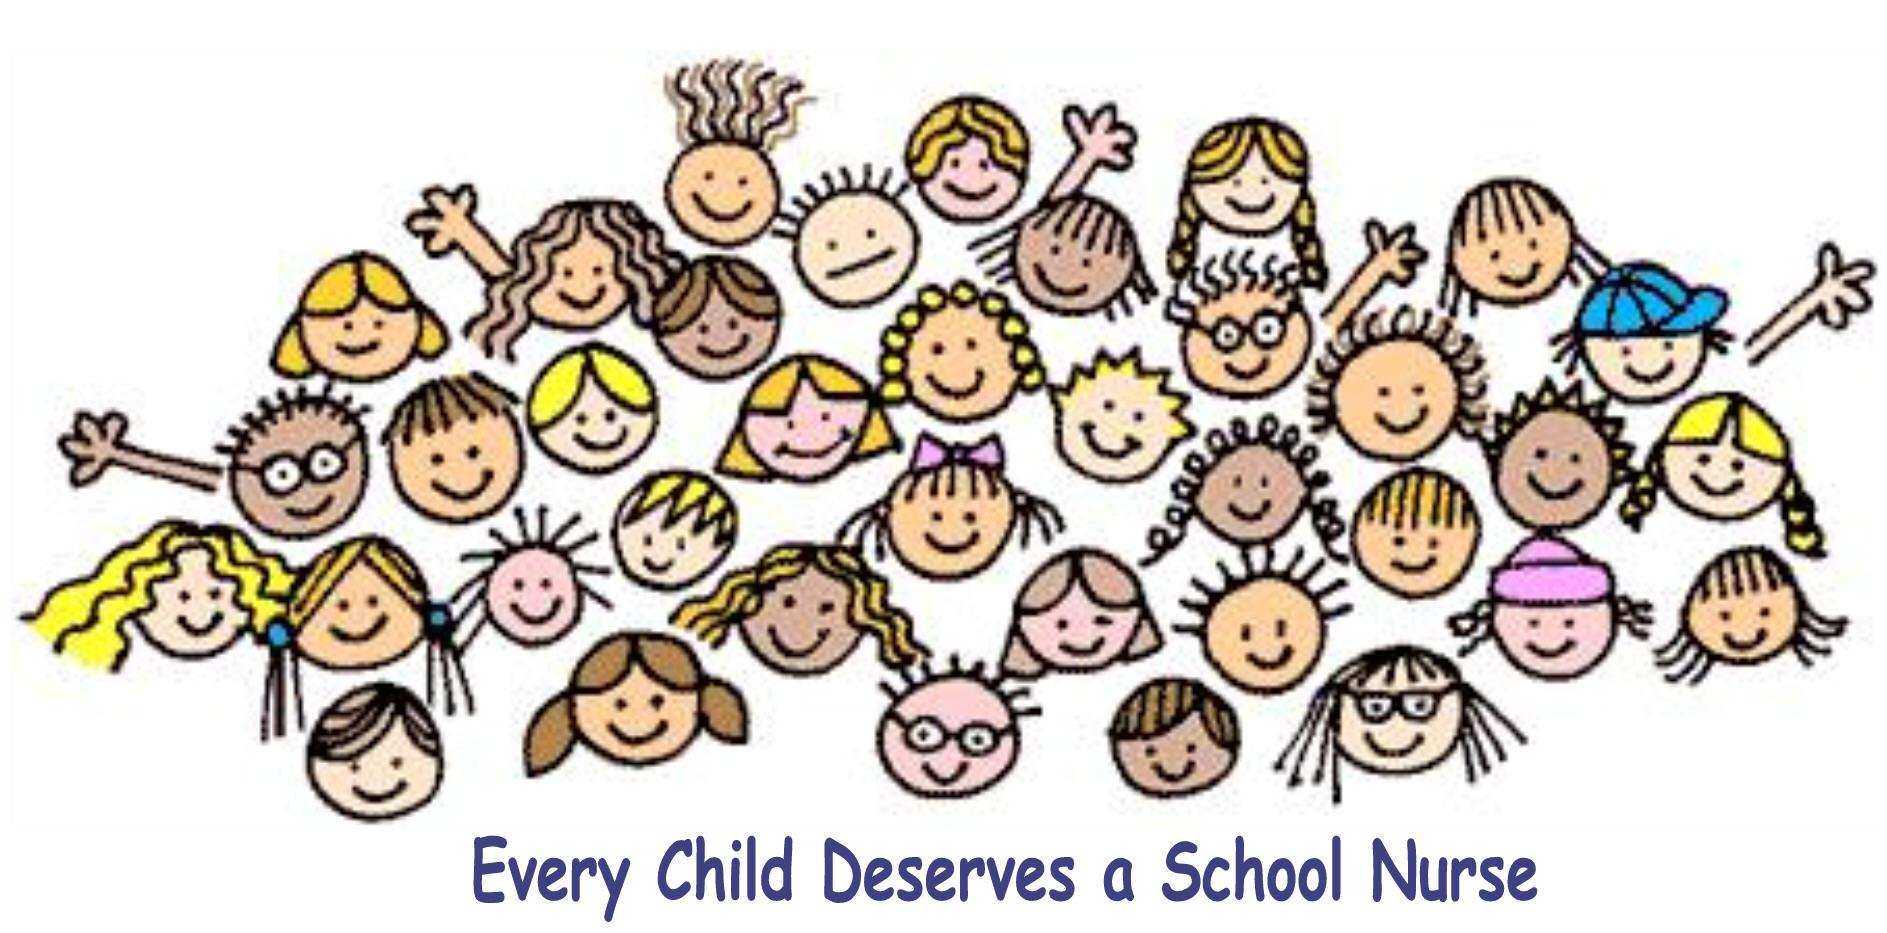 Clip Art School Nurse Clip Art school nurse notes clipart kid the at davenport elementary i am looking forward